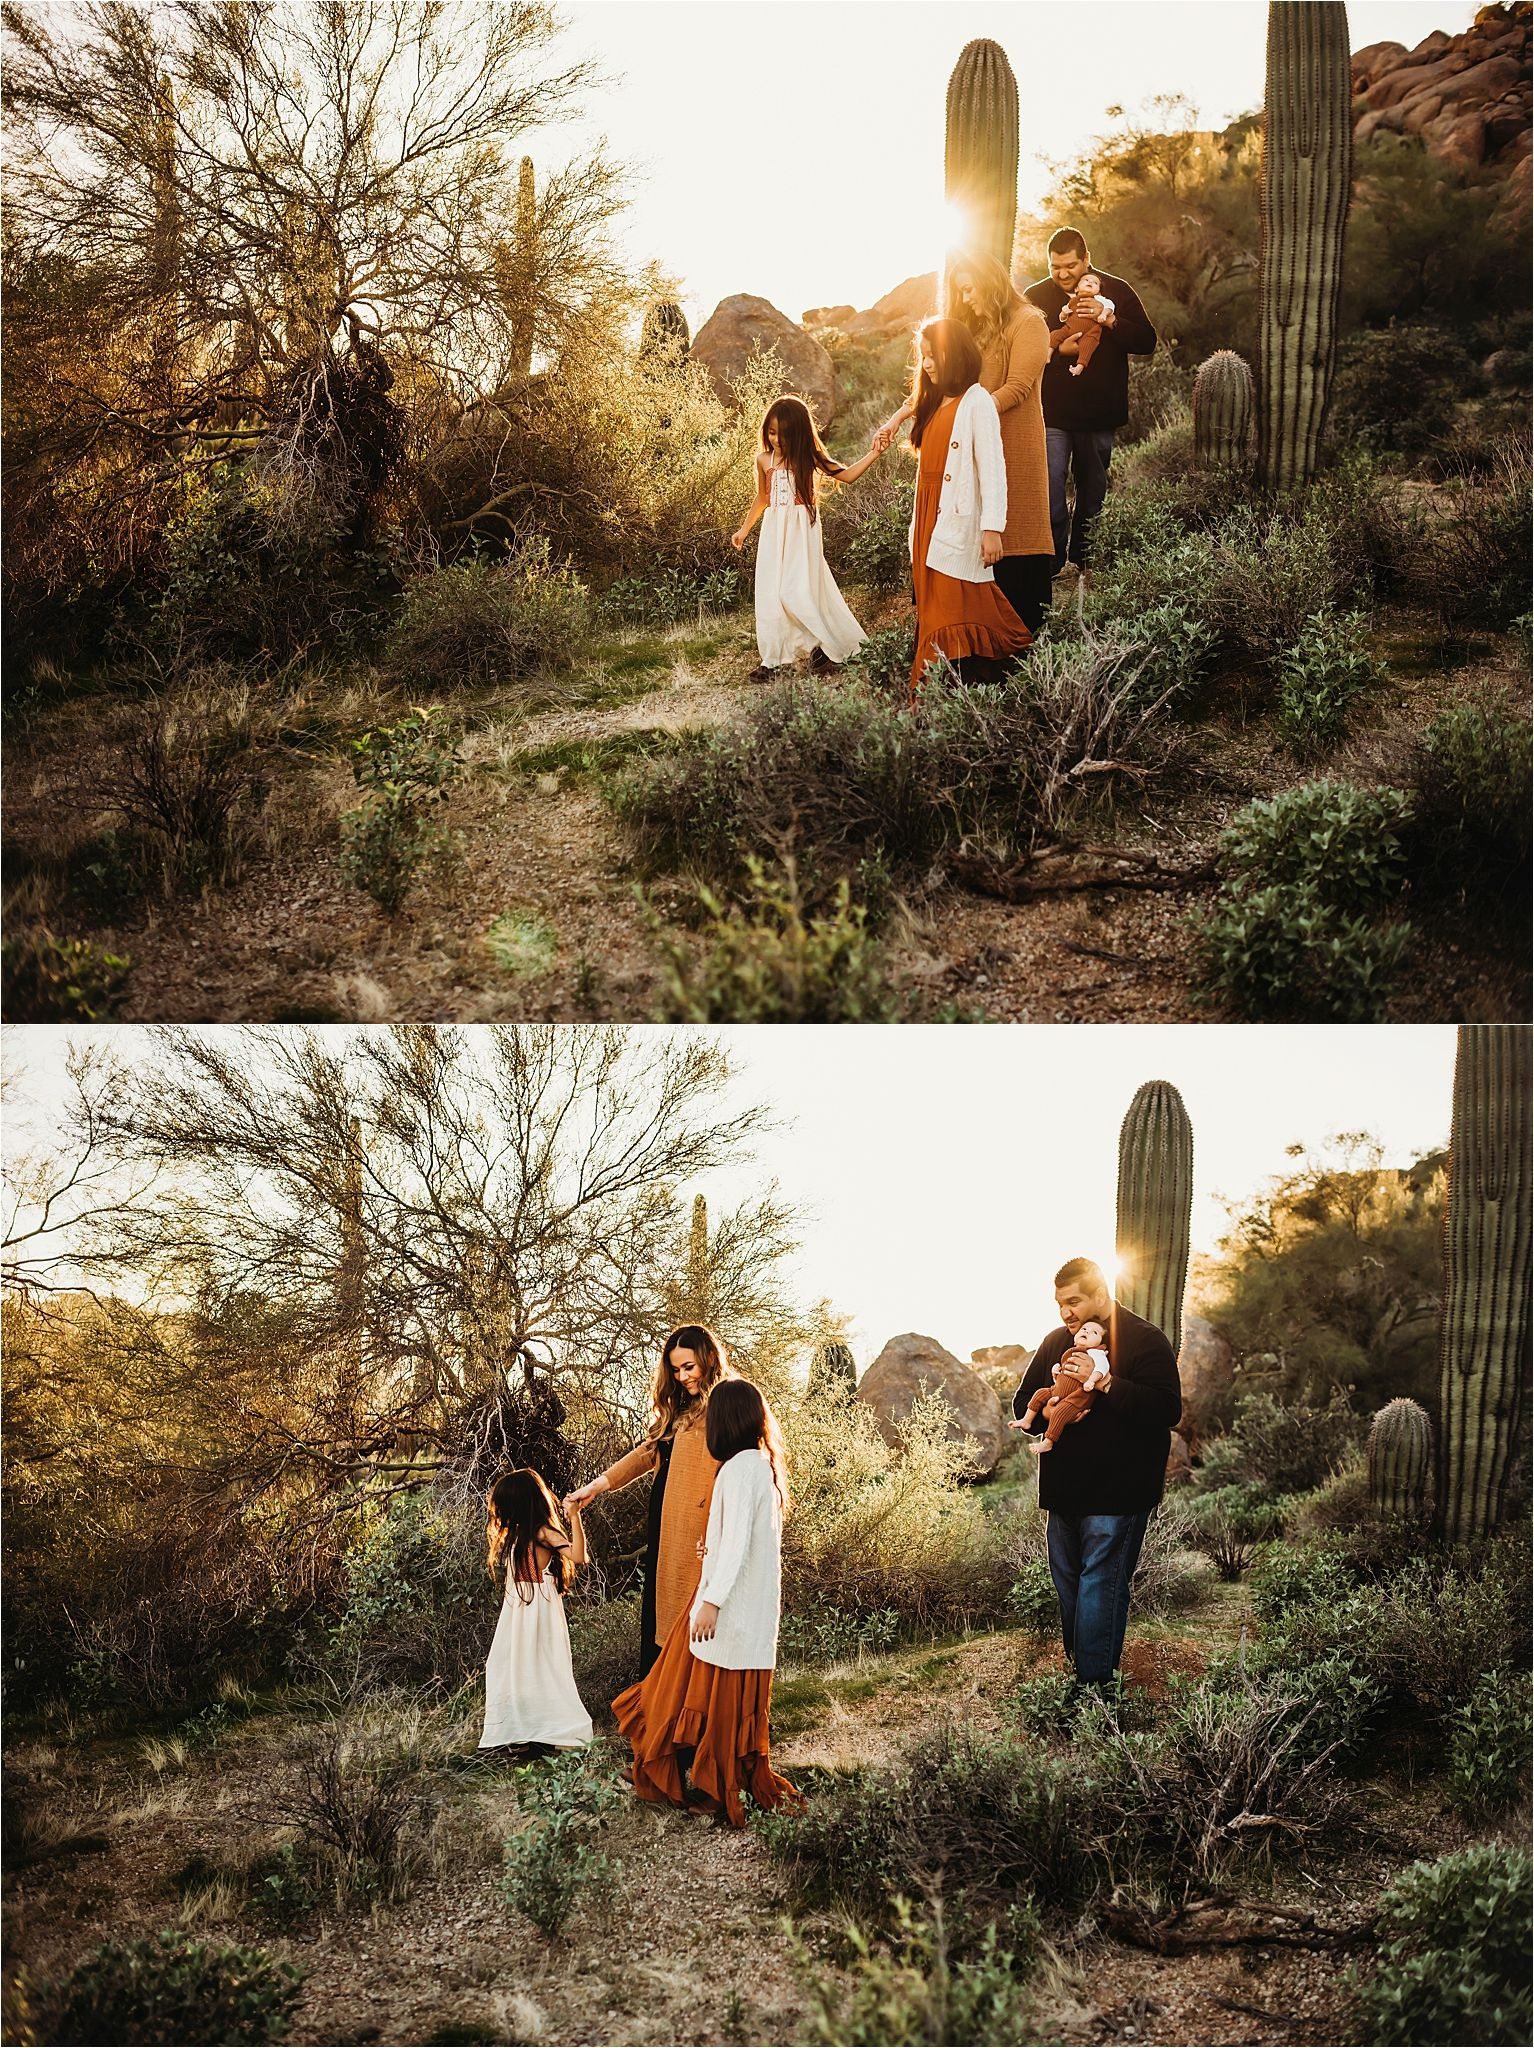 sunset-family-session-Sierra-Vista-Family-Photographer-in-Tucson_1656.jpg